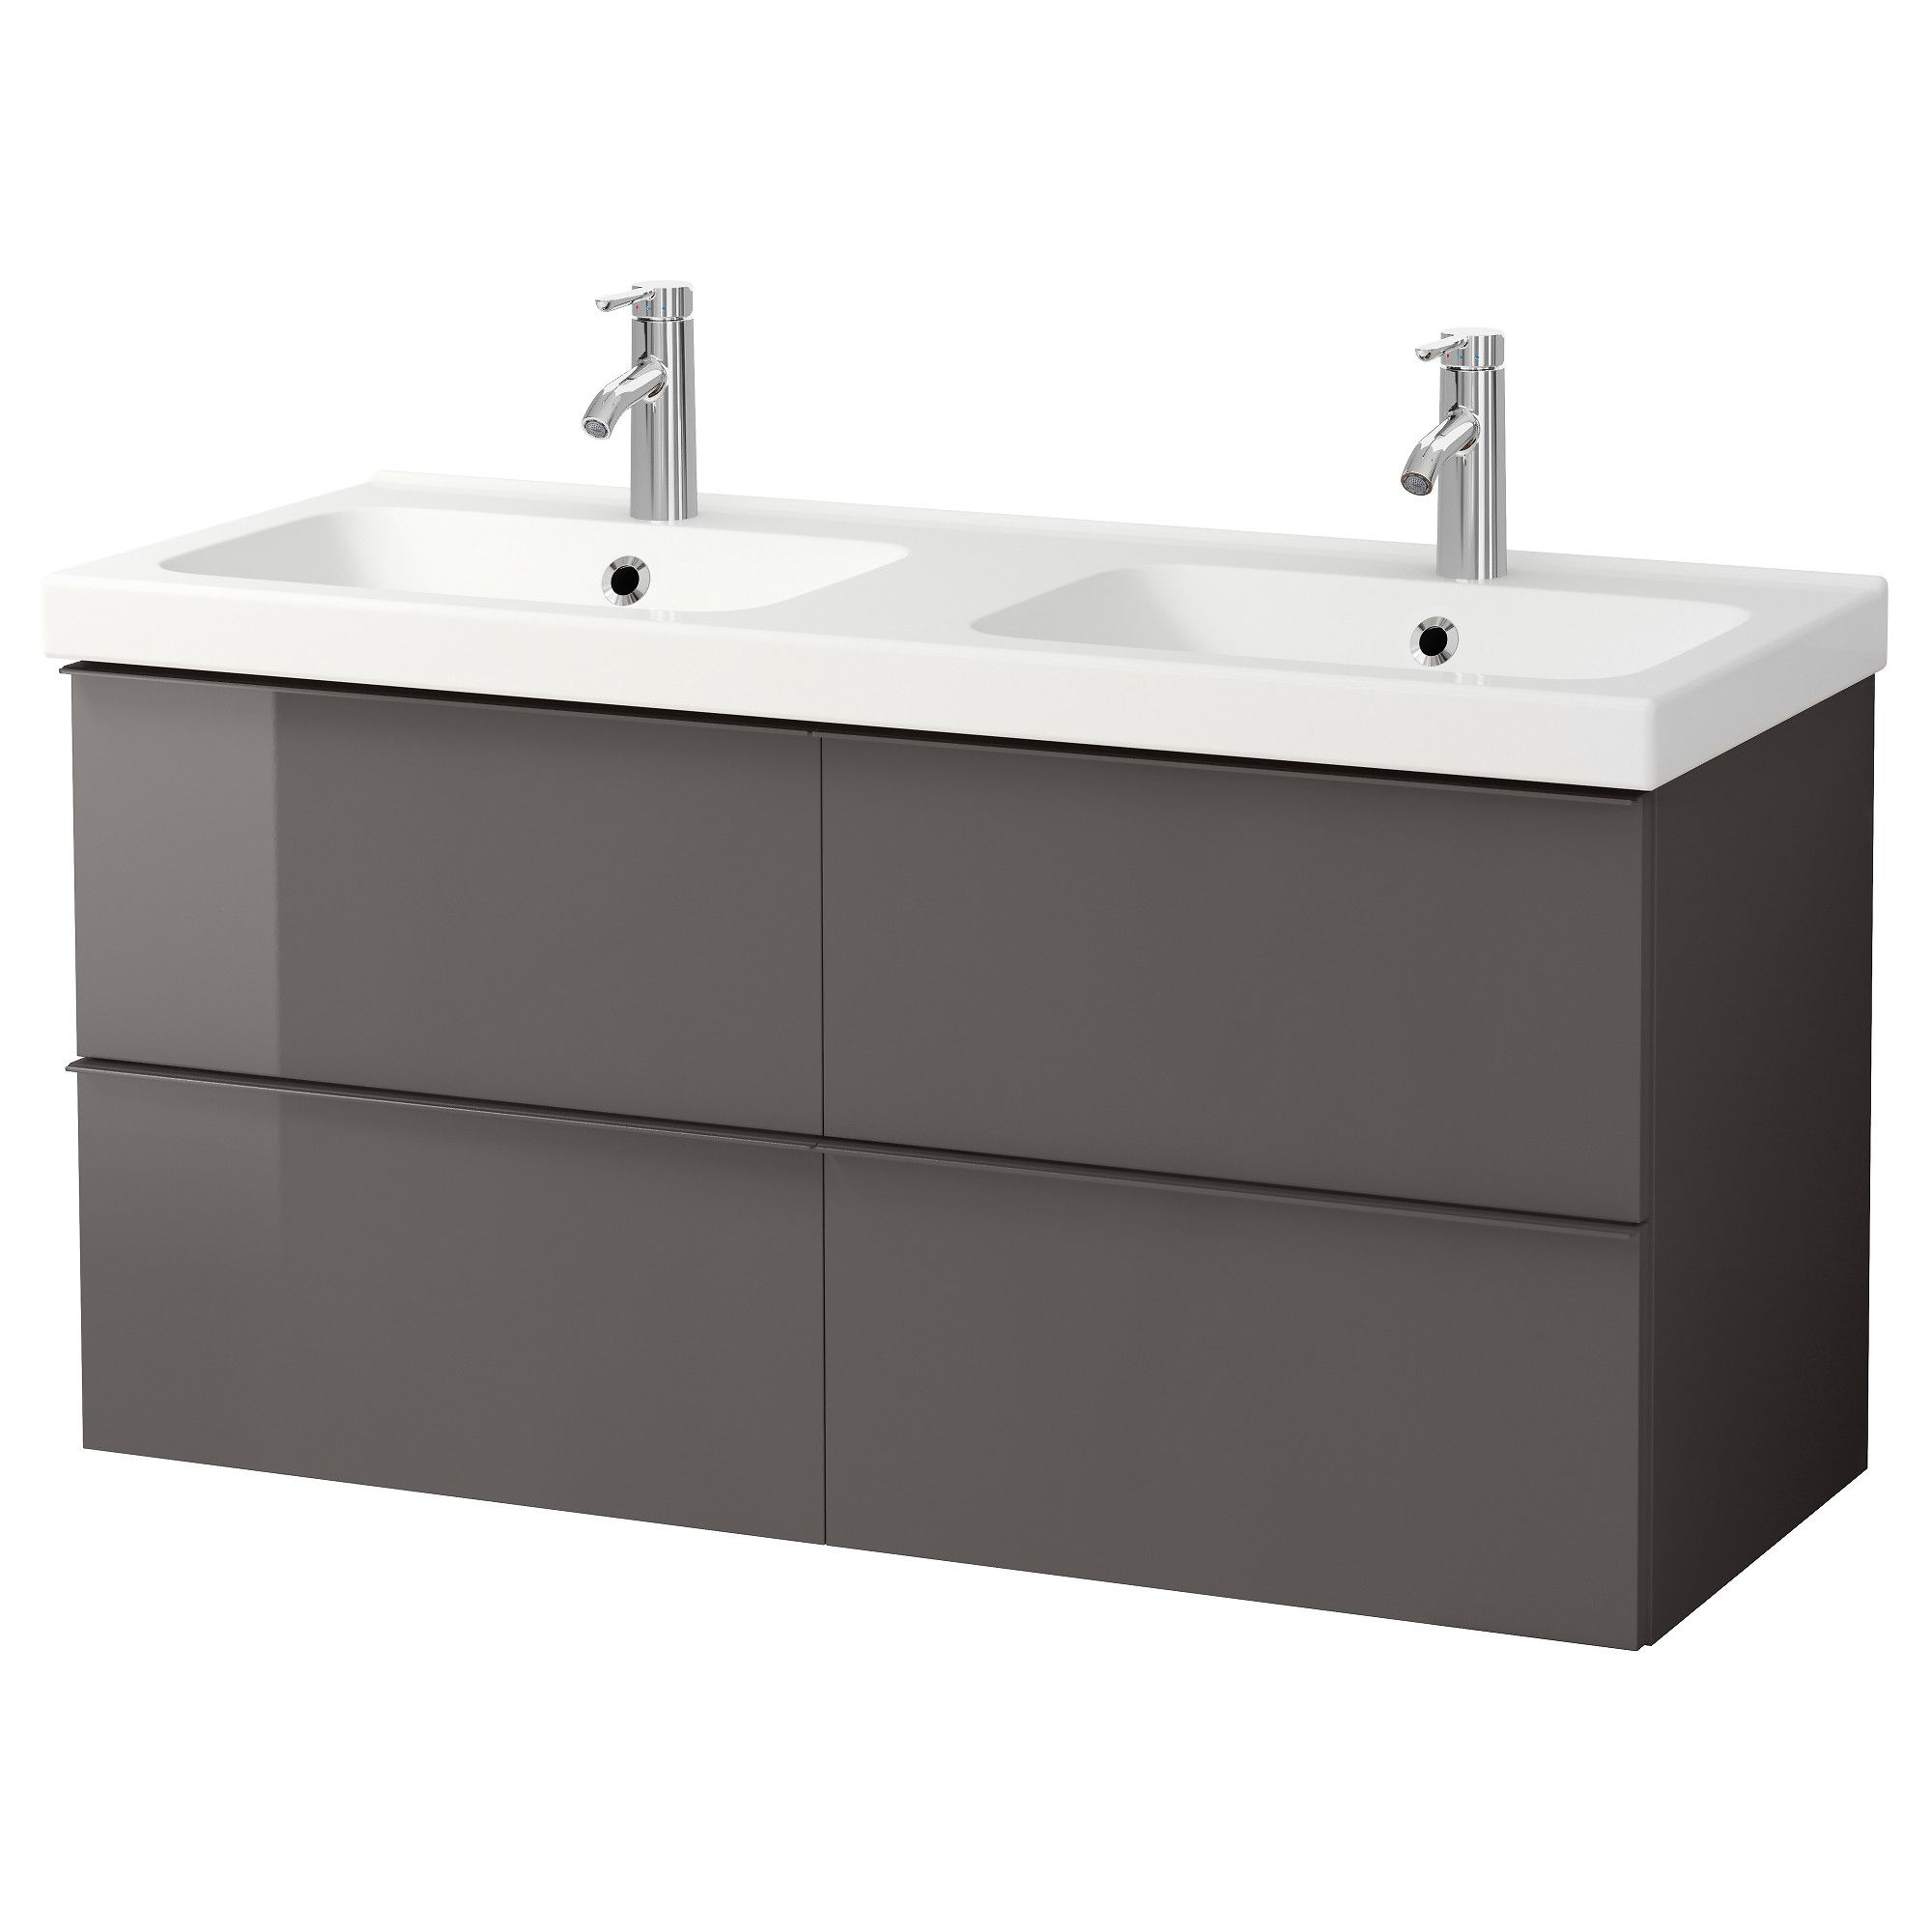 Kitchen Cabinet Warranty Ikea Ikea Godmorgon Odensvik Sink Cabinet With 4 Drawers